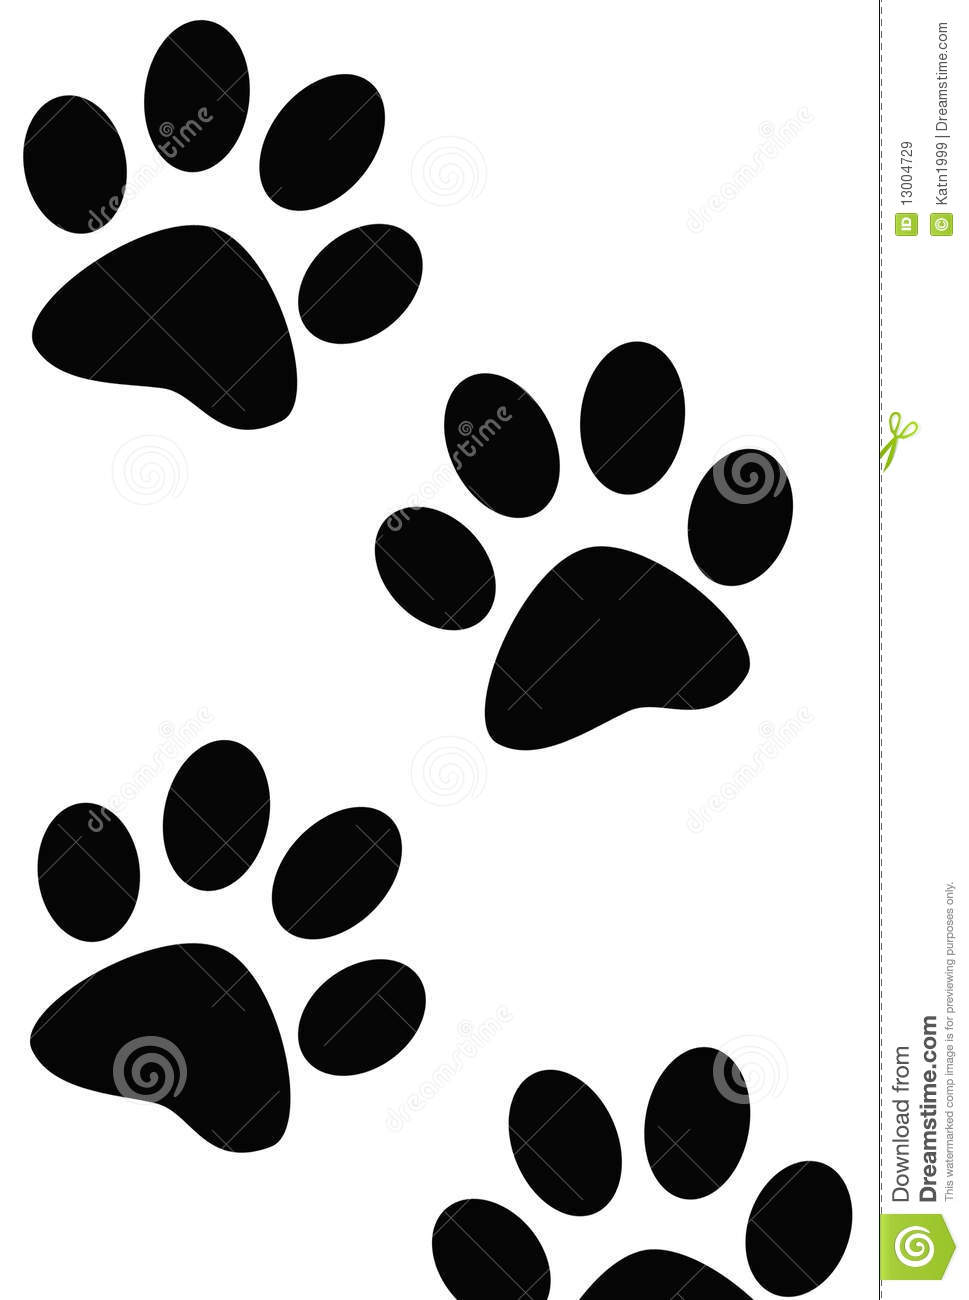 Paw Prints Of Dog Or Cat Royalty Free Stock Images - Image: 13004729